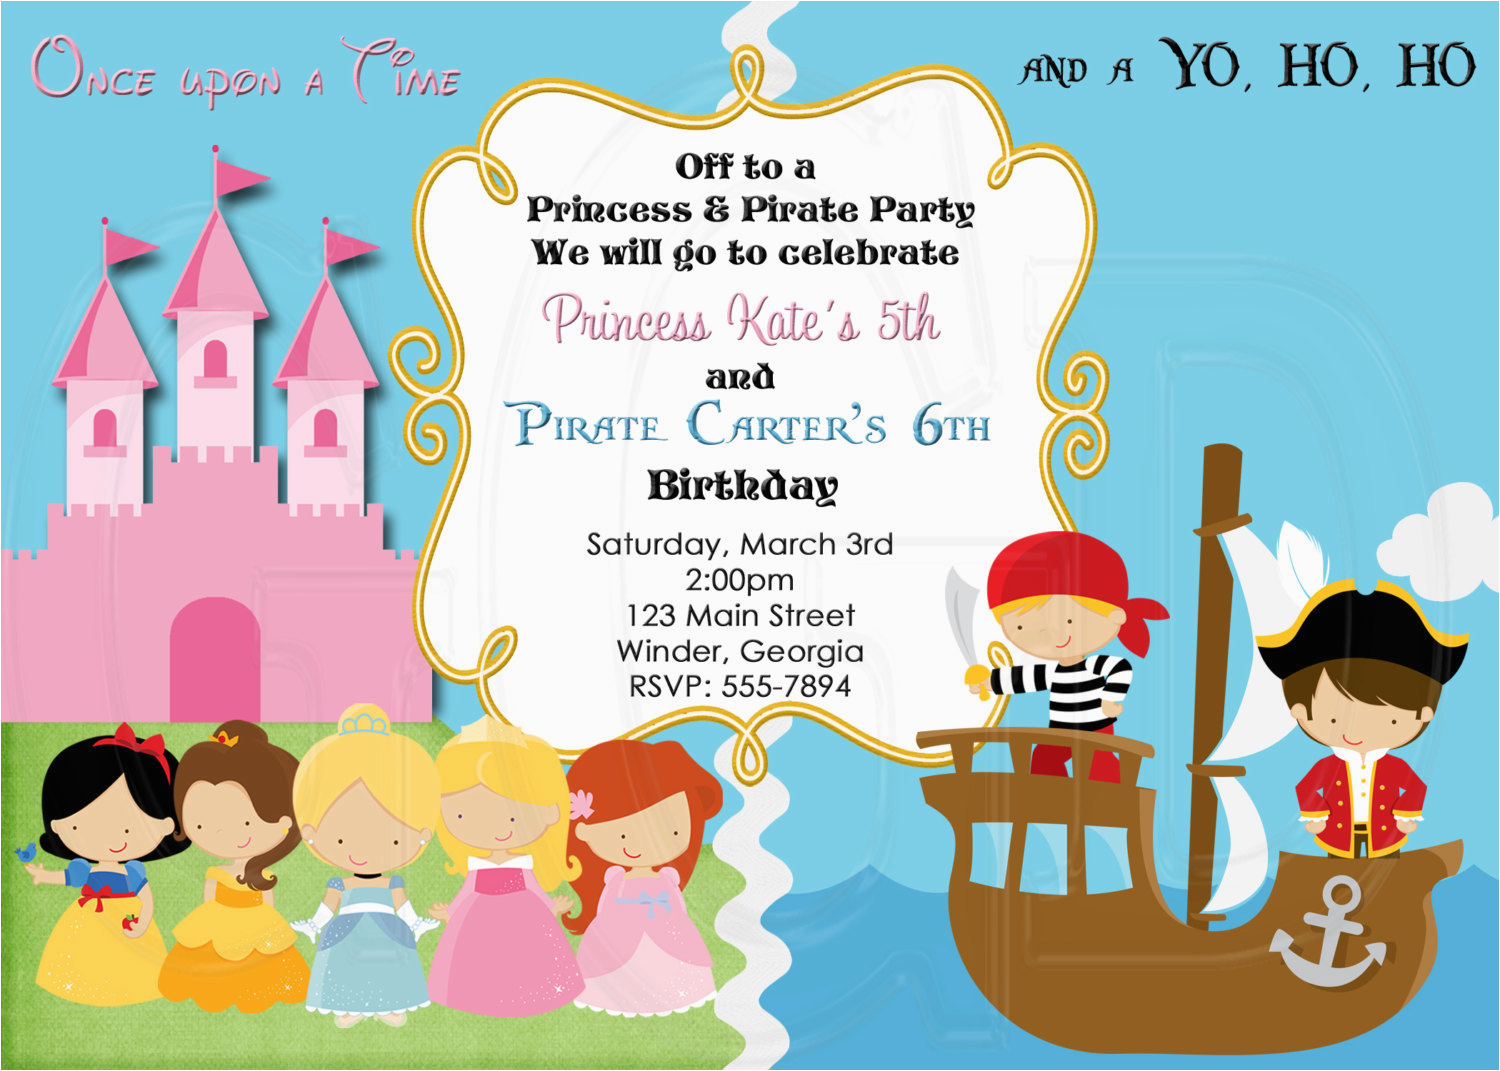 Princess and Pirate Birthday Party Invitations Pirate and Princess Birthday Invitation Digital File